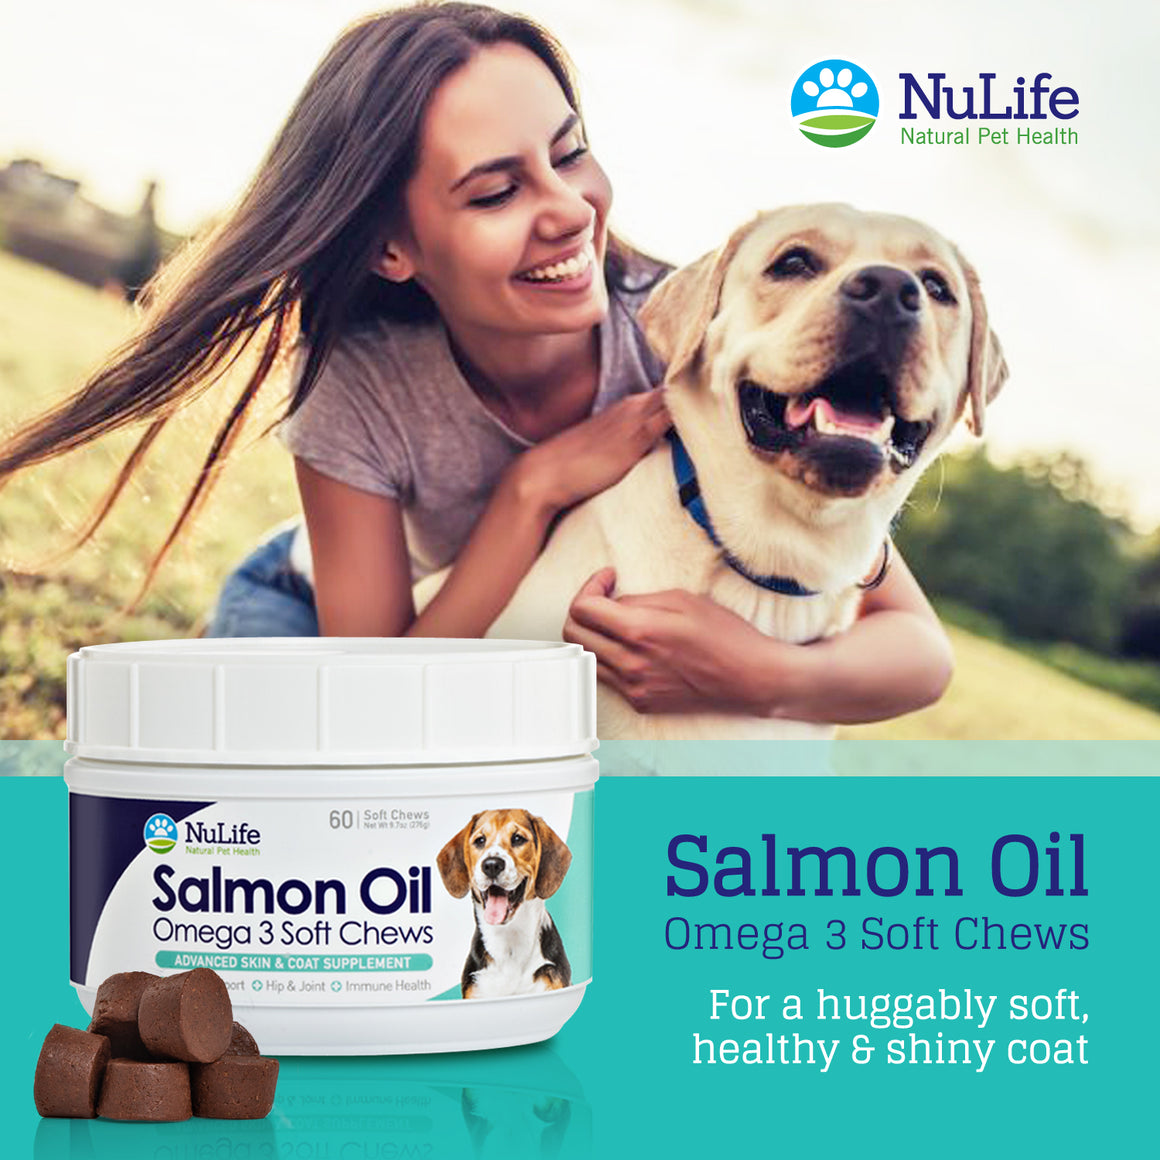 Salmon Oil Omega 3 Soft Chews, 60 cnt